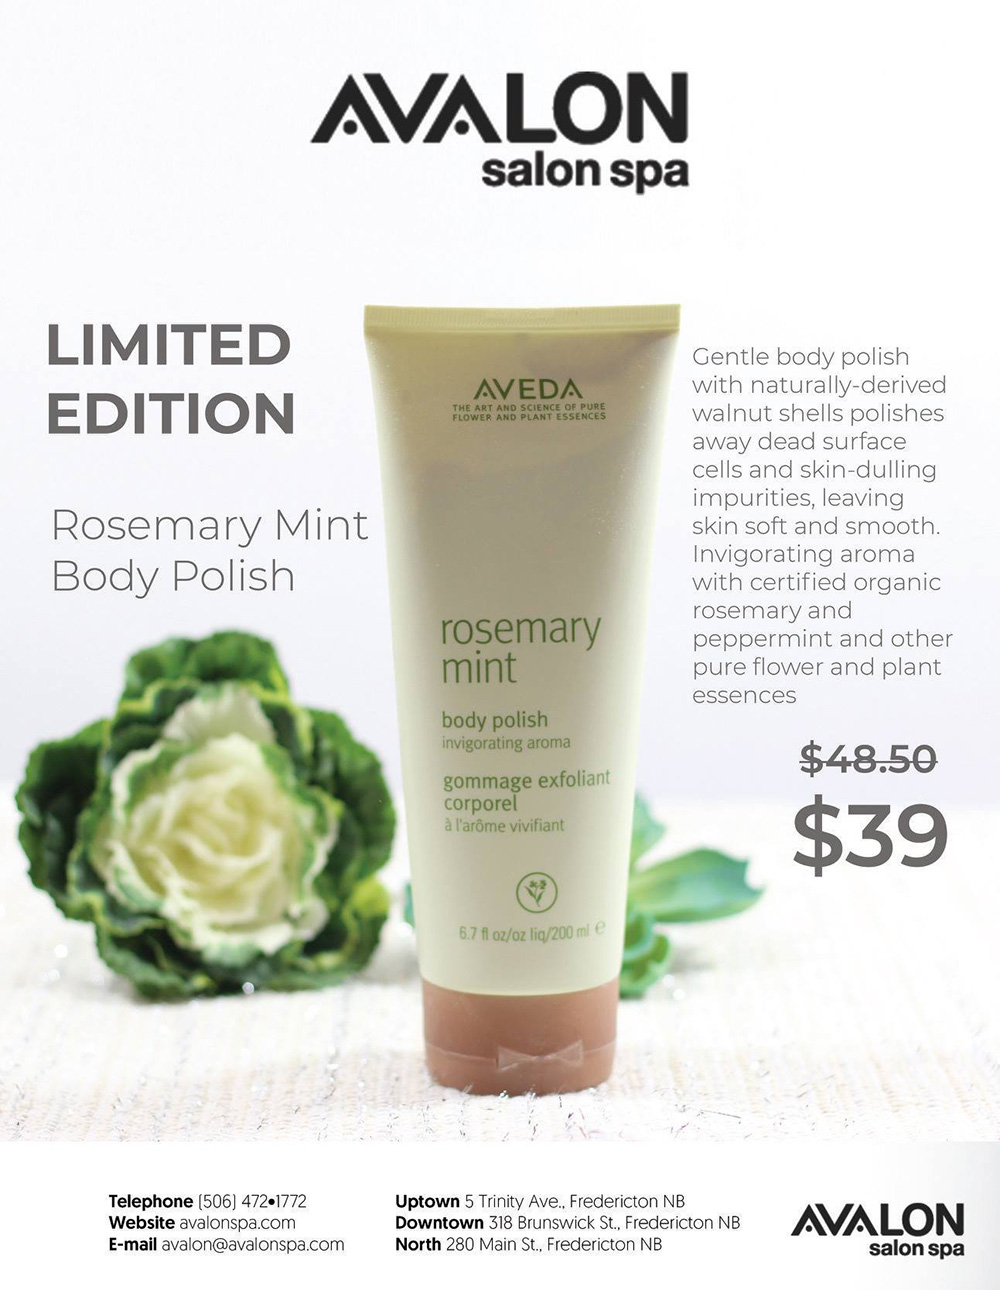 rosemary-mint-39usd-only